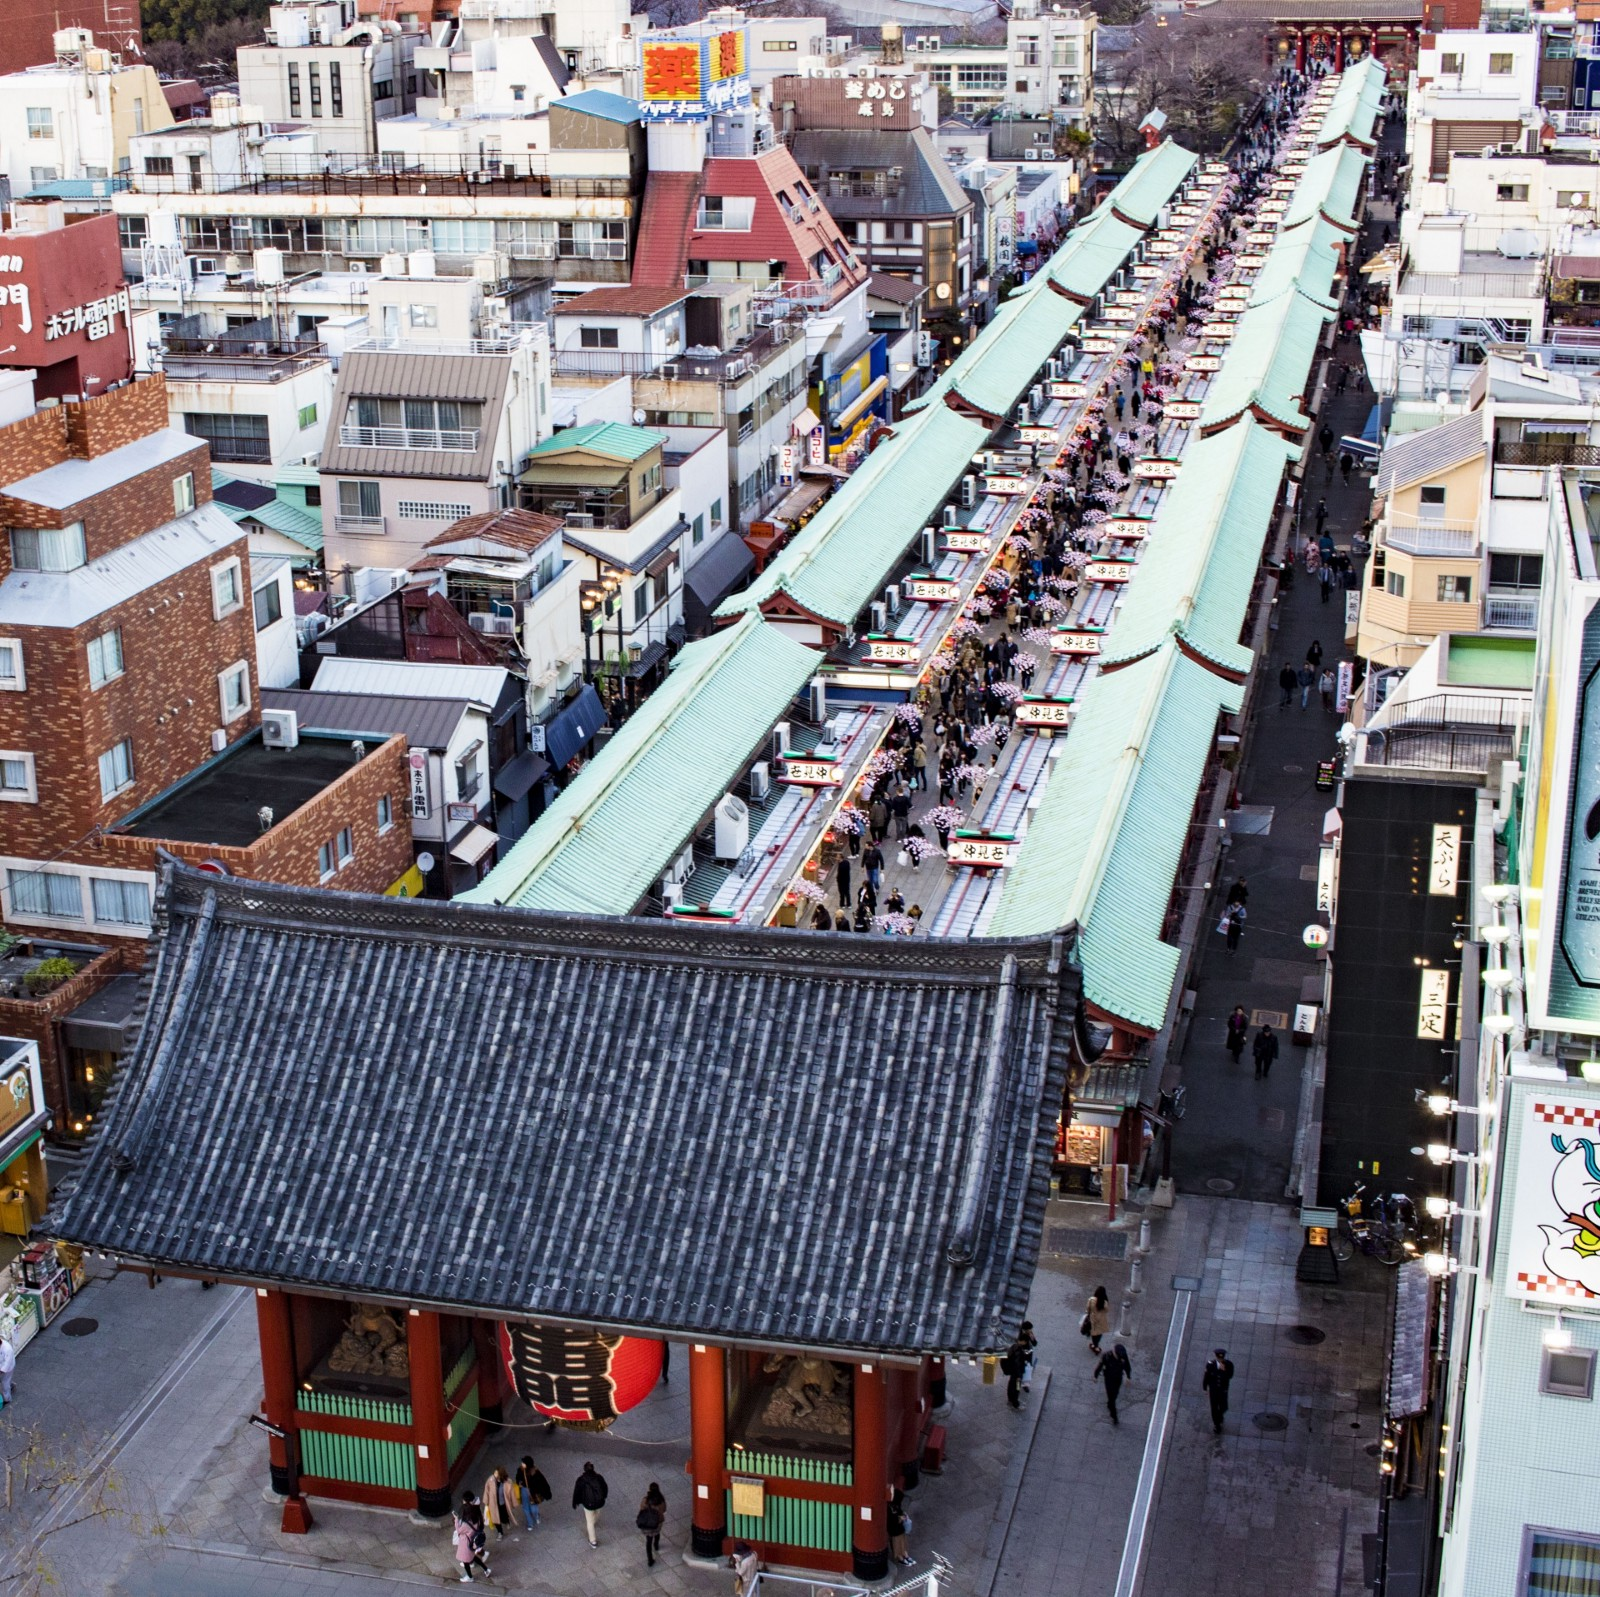 The view from above: Nakamise Street in Asakusa